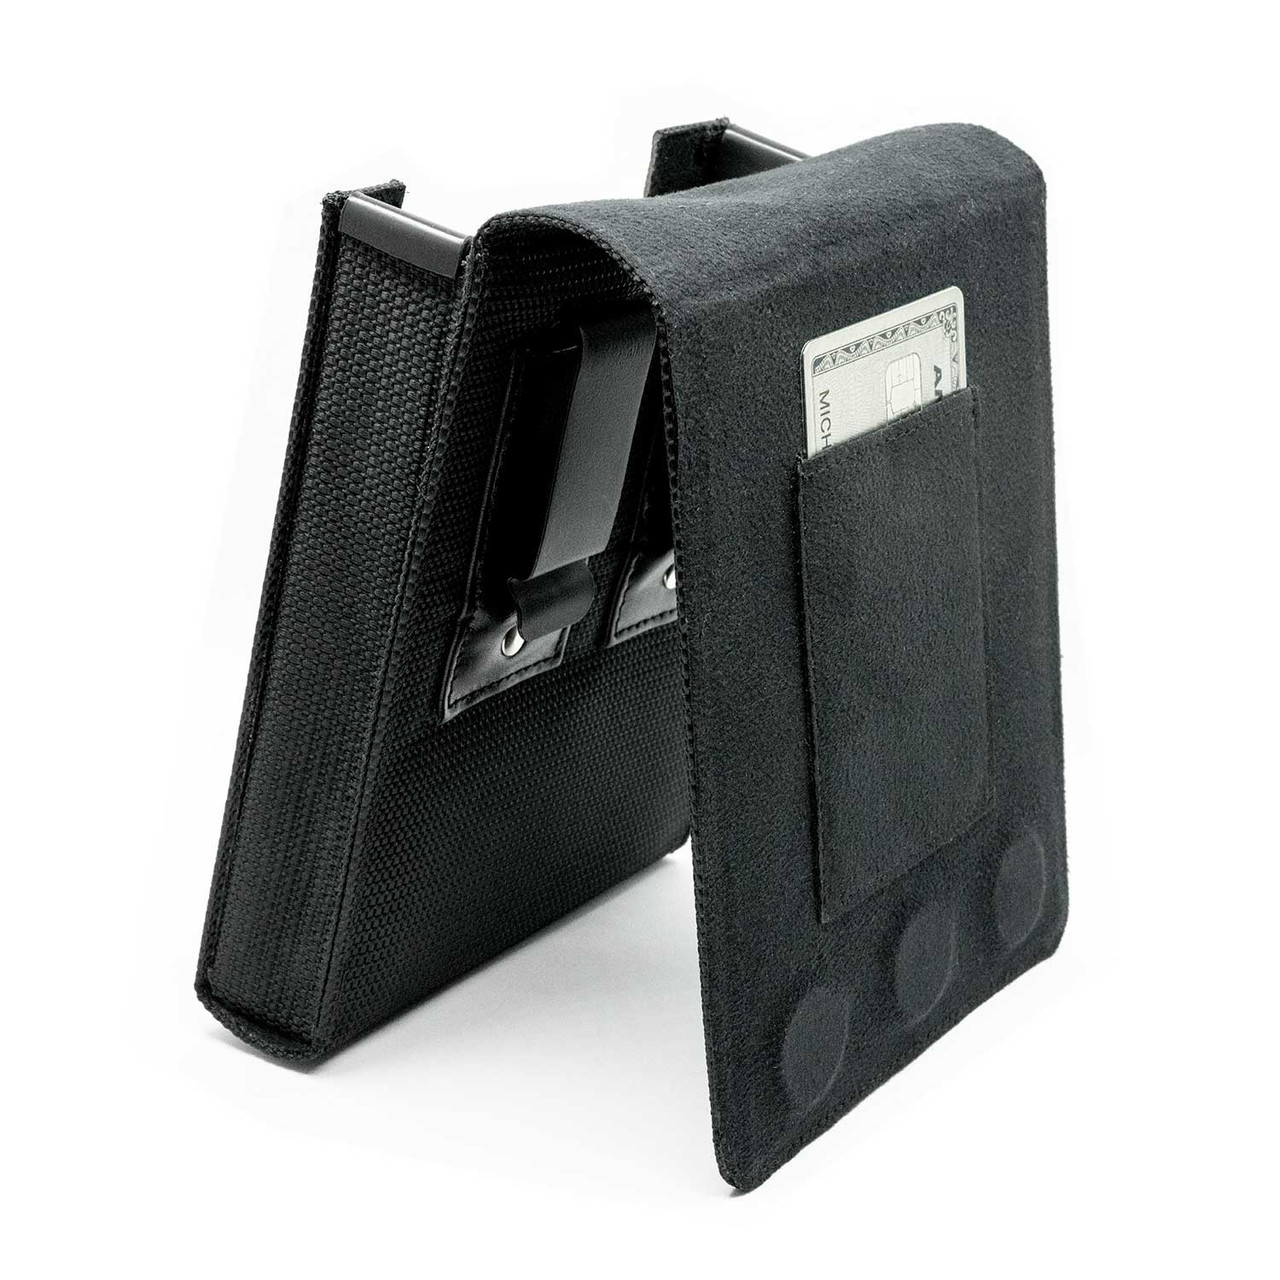 Ruger Security 9 Air Force Tactical Patch Holster